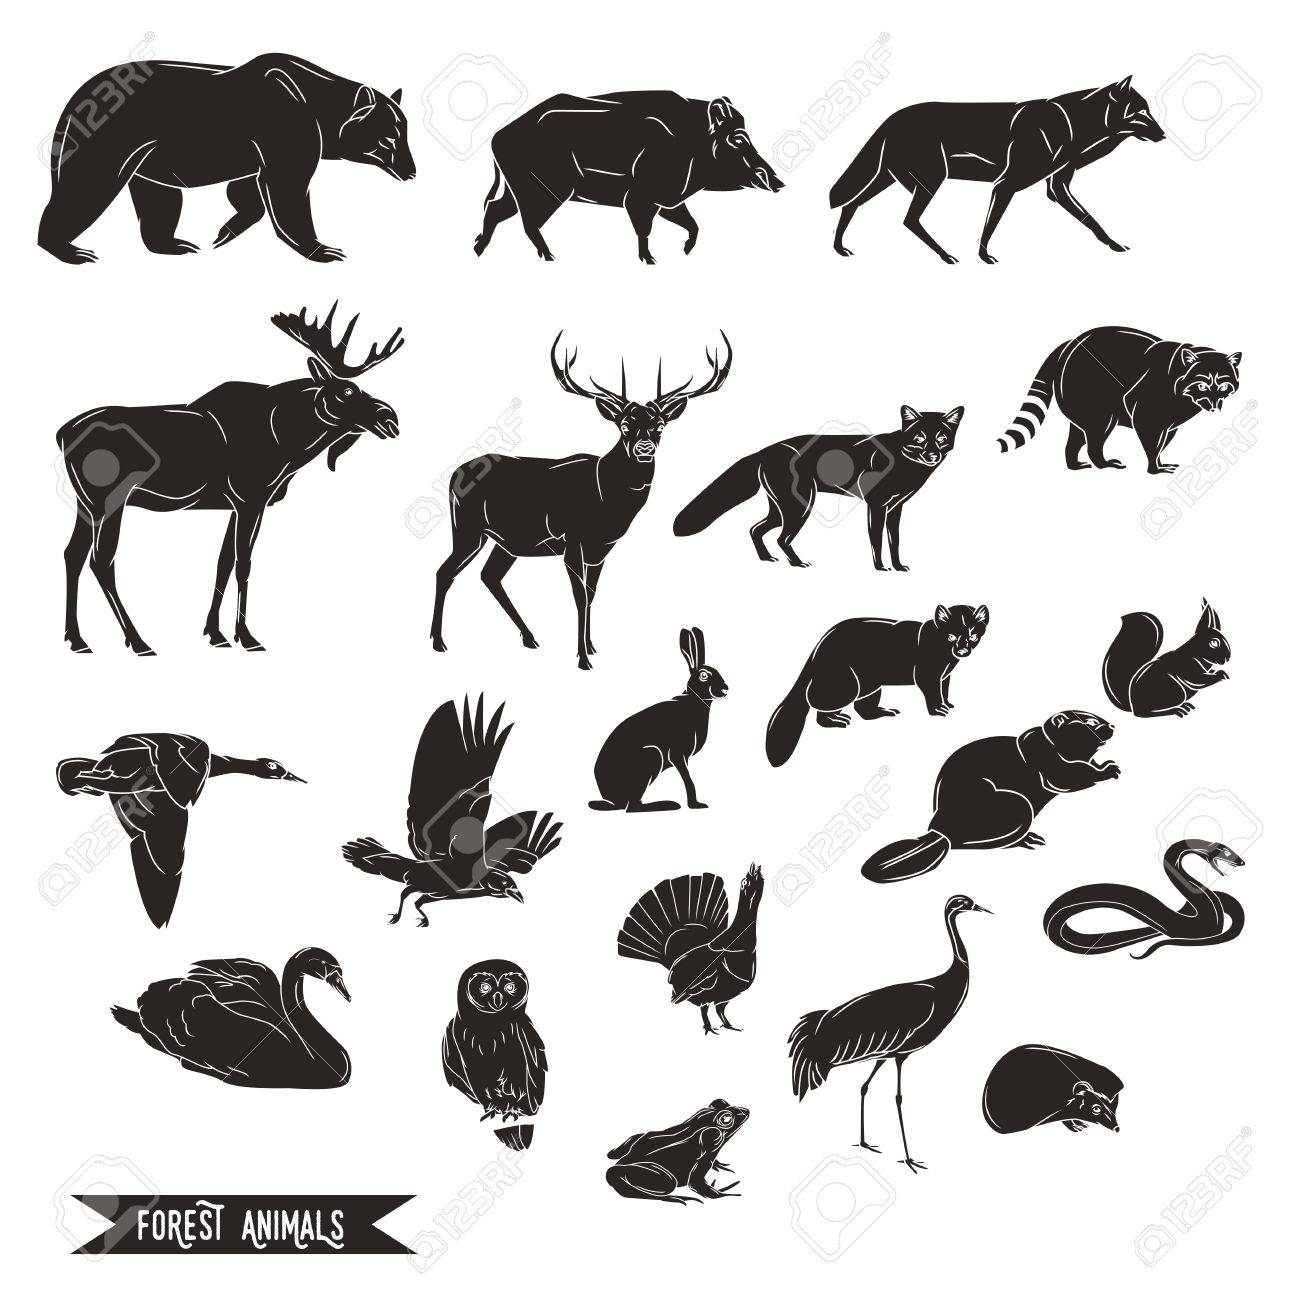 Forest animals silhouettes vintage. Vector illustration in line art isolated - 58817414